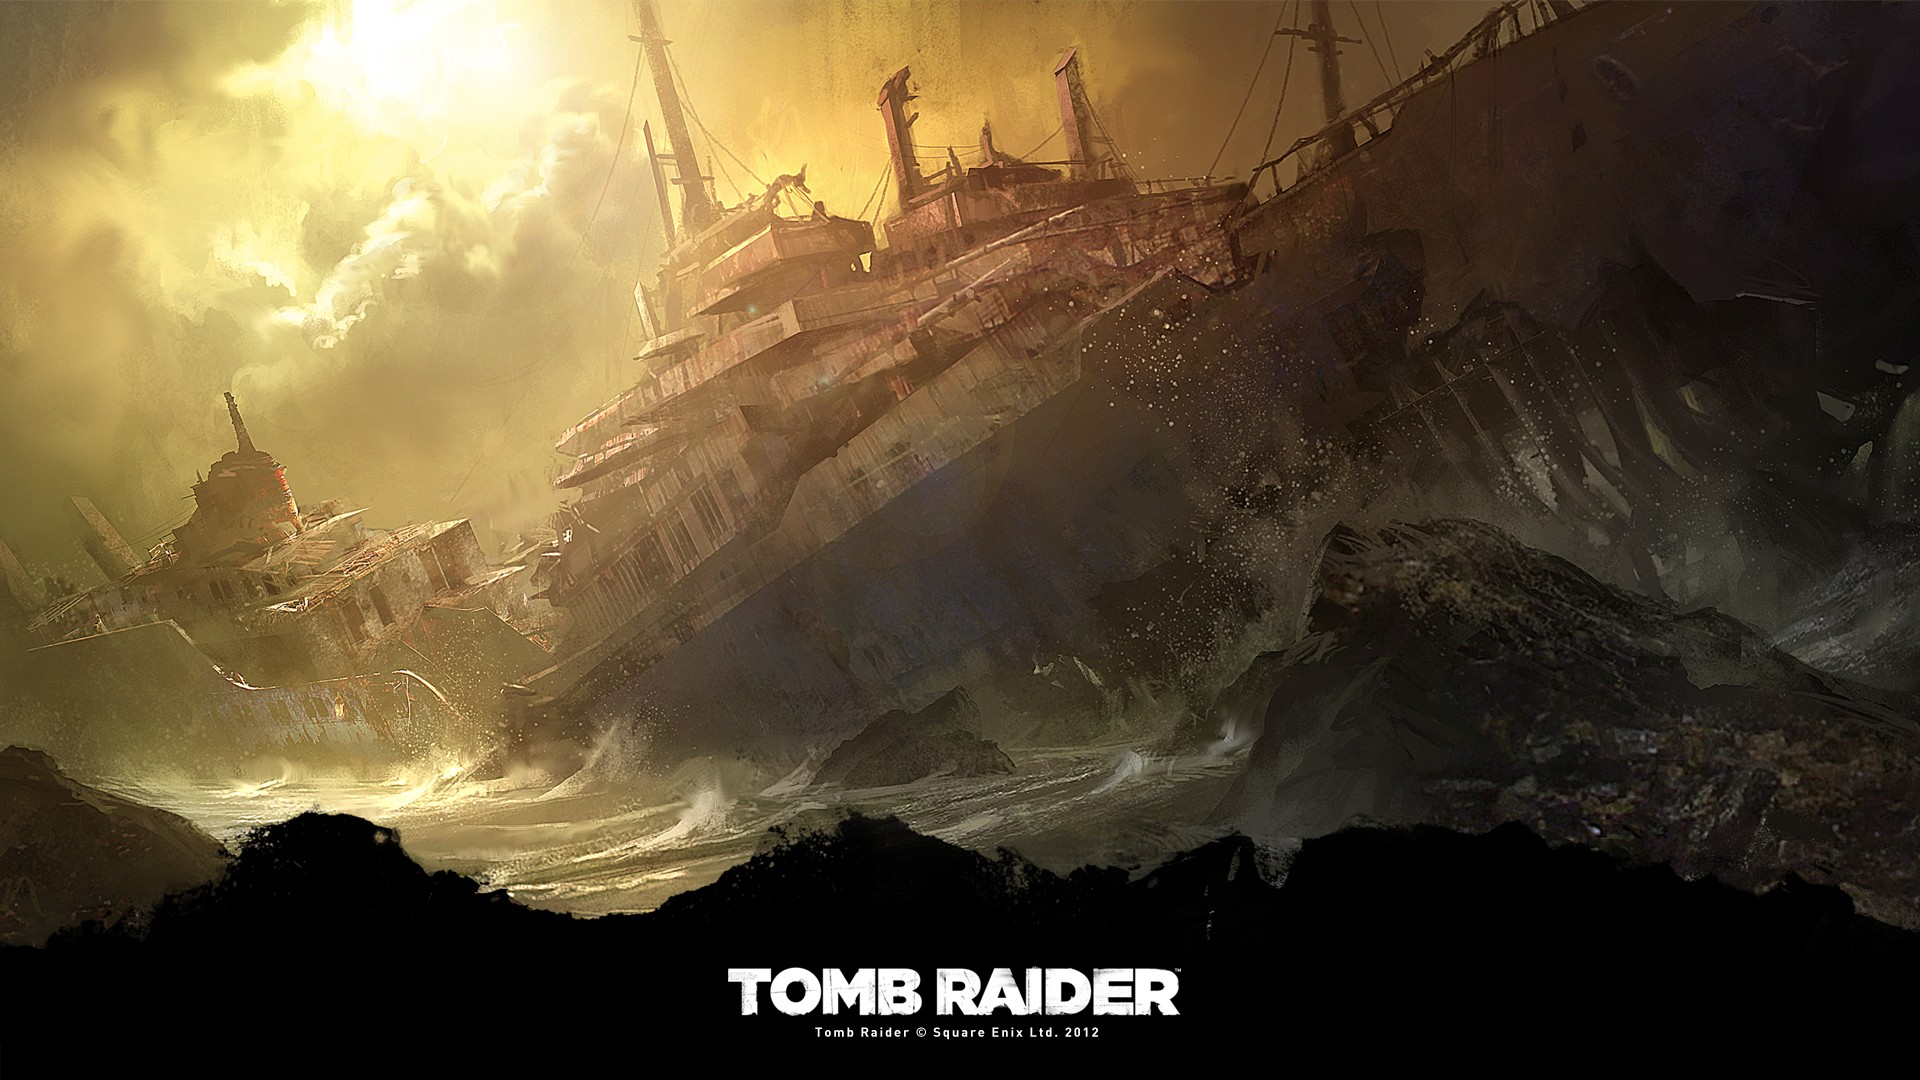 Full Hd Wallpapers 1080p Widescreen Cars Tomb Raider A Survivor Is Born Wallpapers Hd Wallpapers